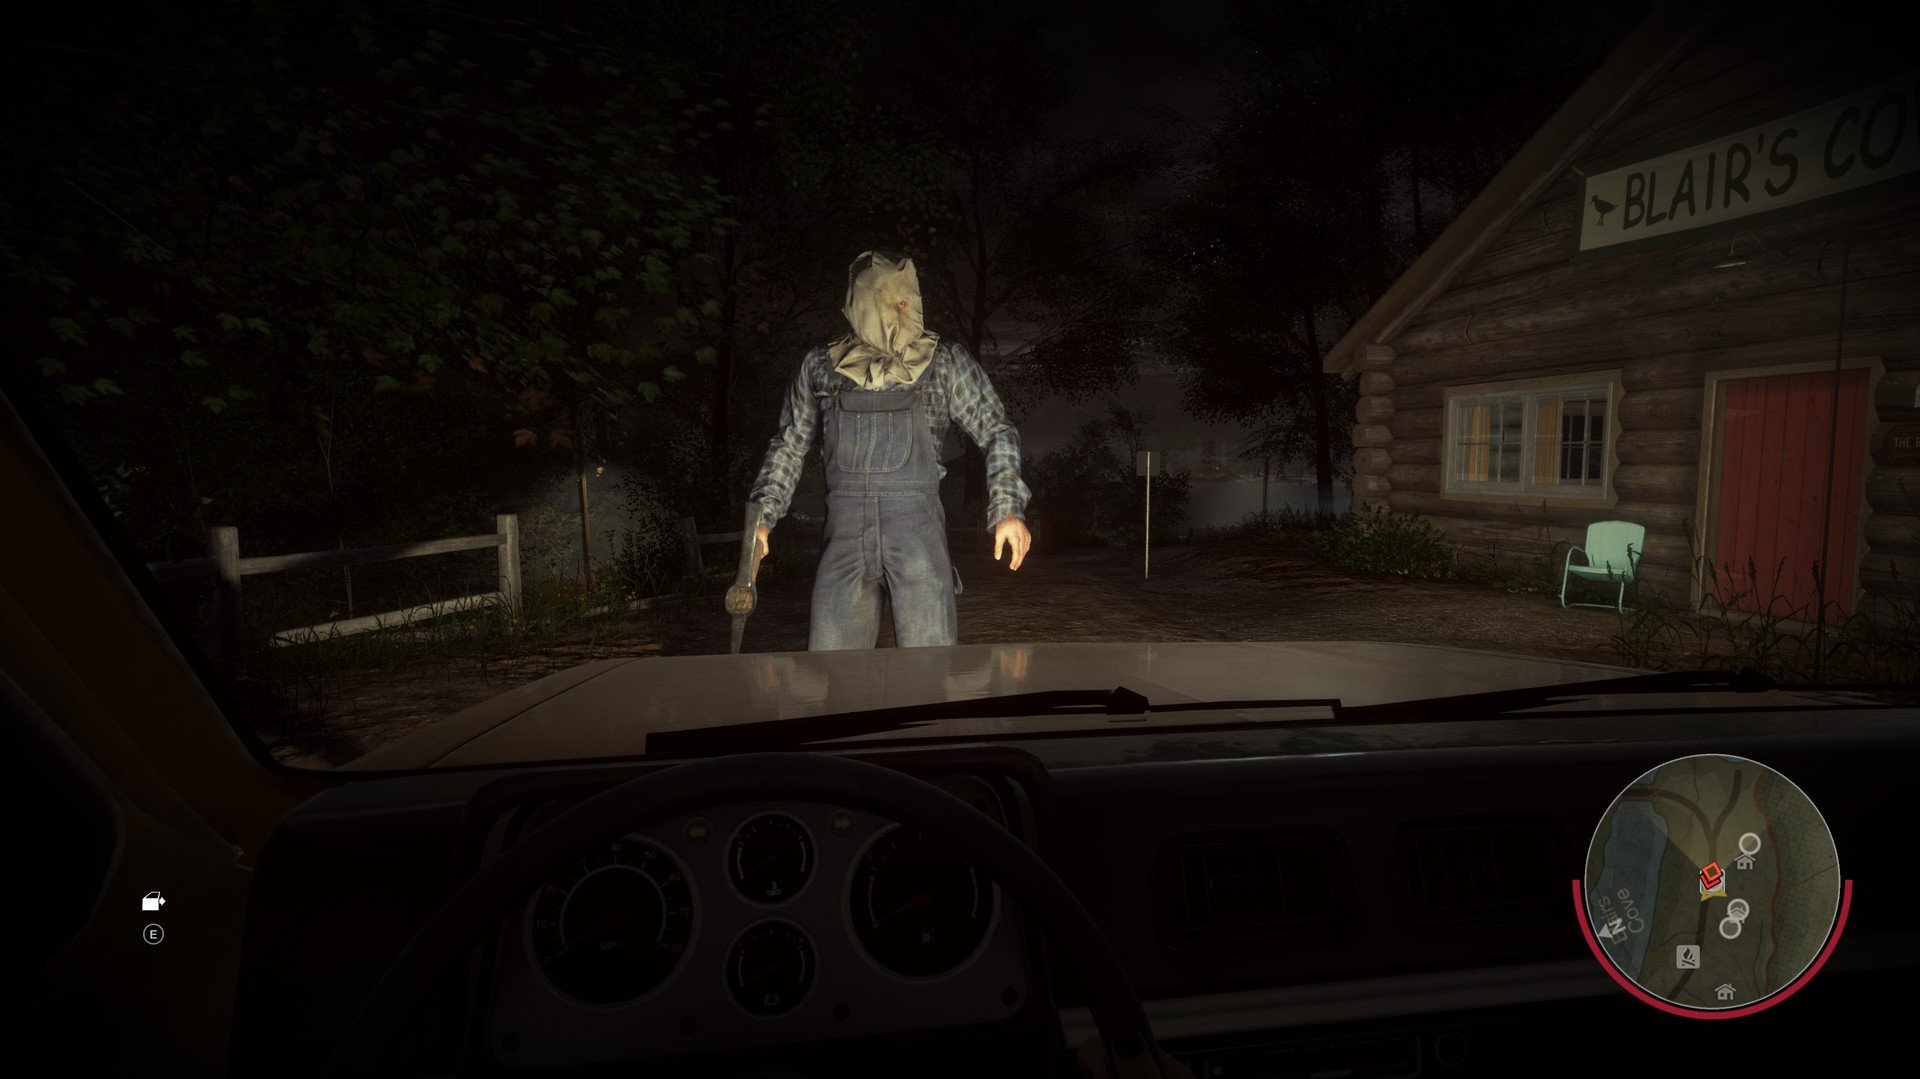 Revisiting Friday the 13th: The Game on Friday the 13th